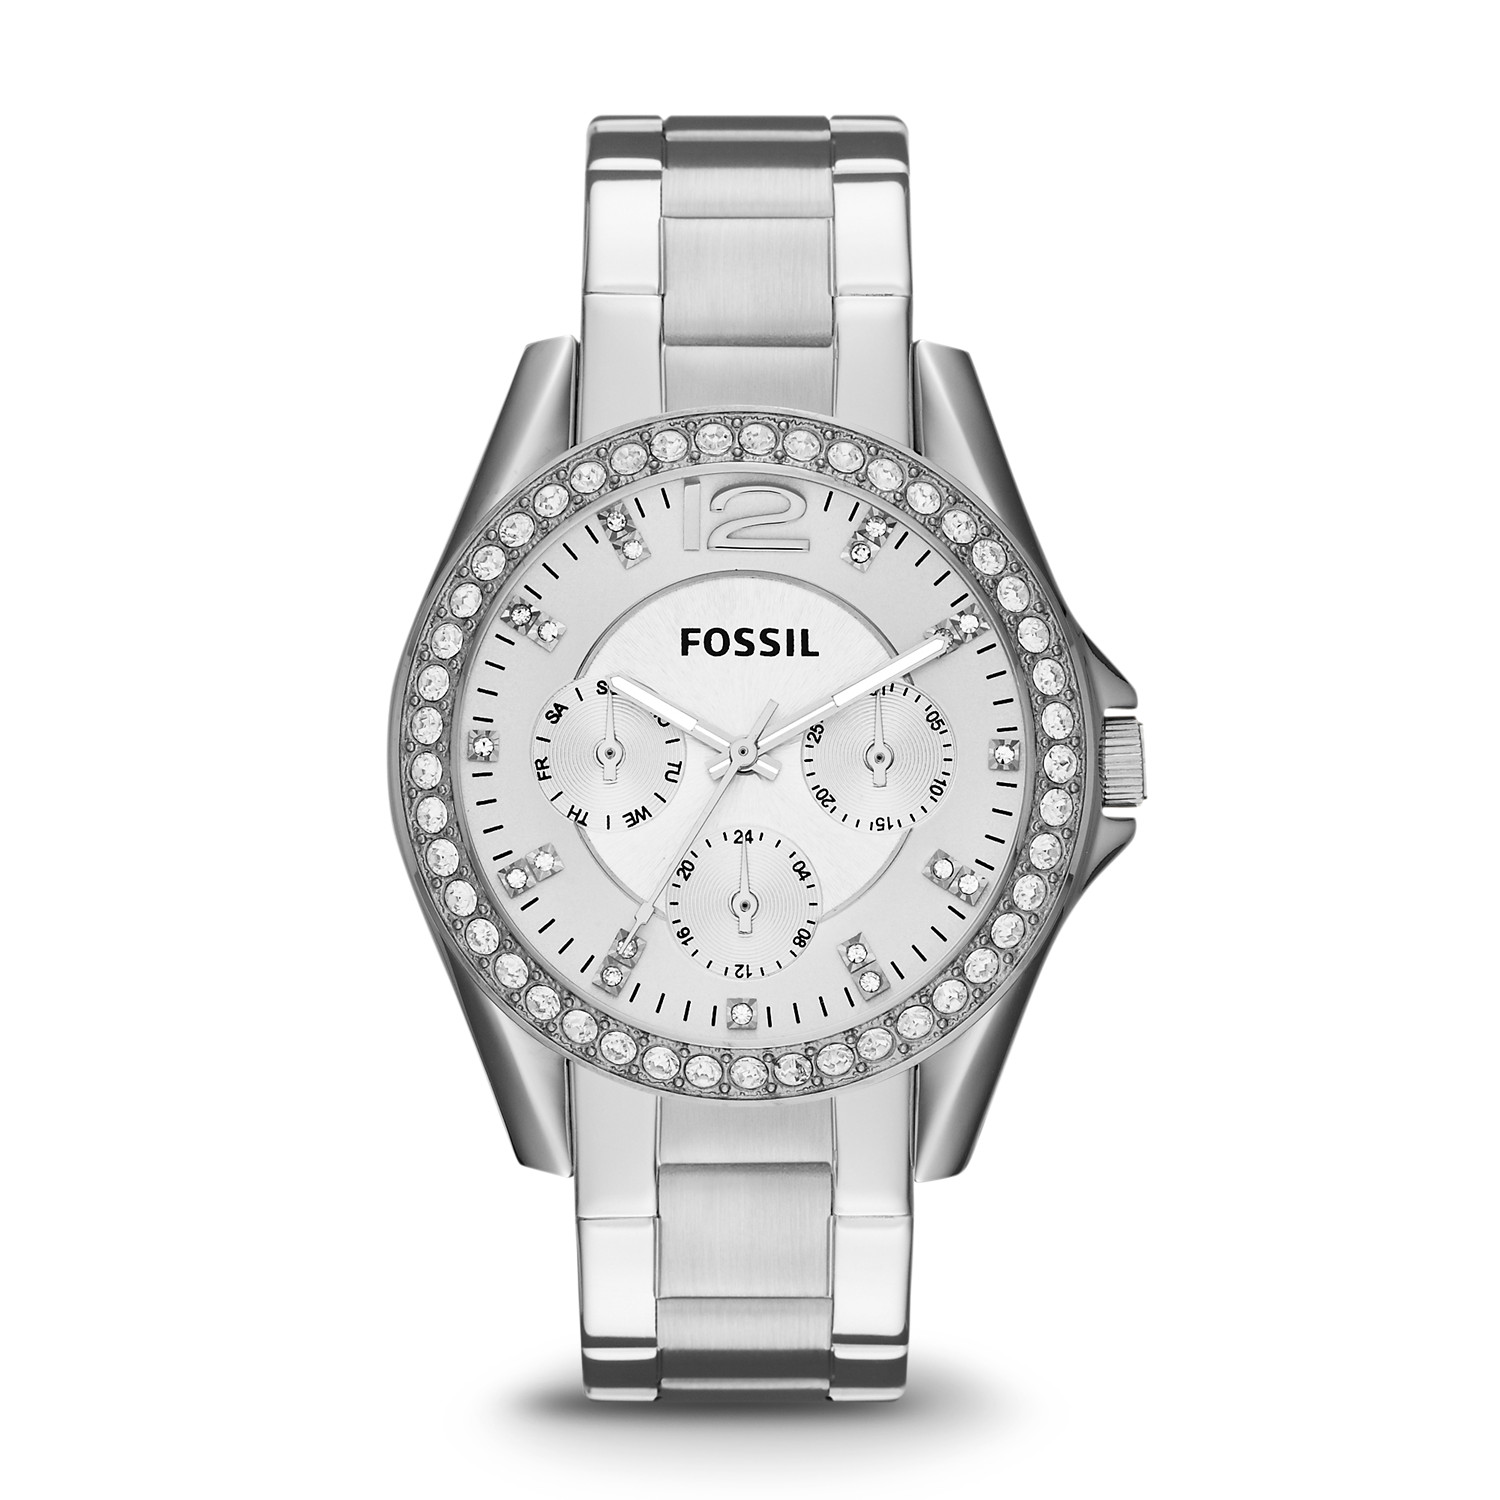 Fossil Analog Watch Features Dbsecurity Fs5176 Riley Multifunction Stainless Steel